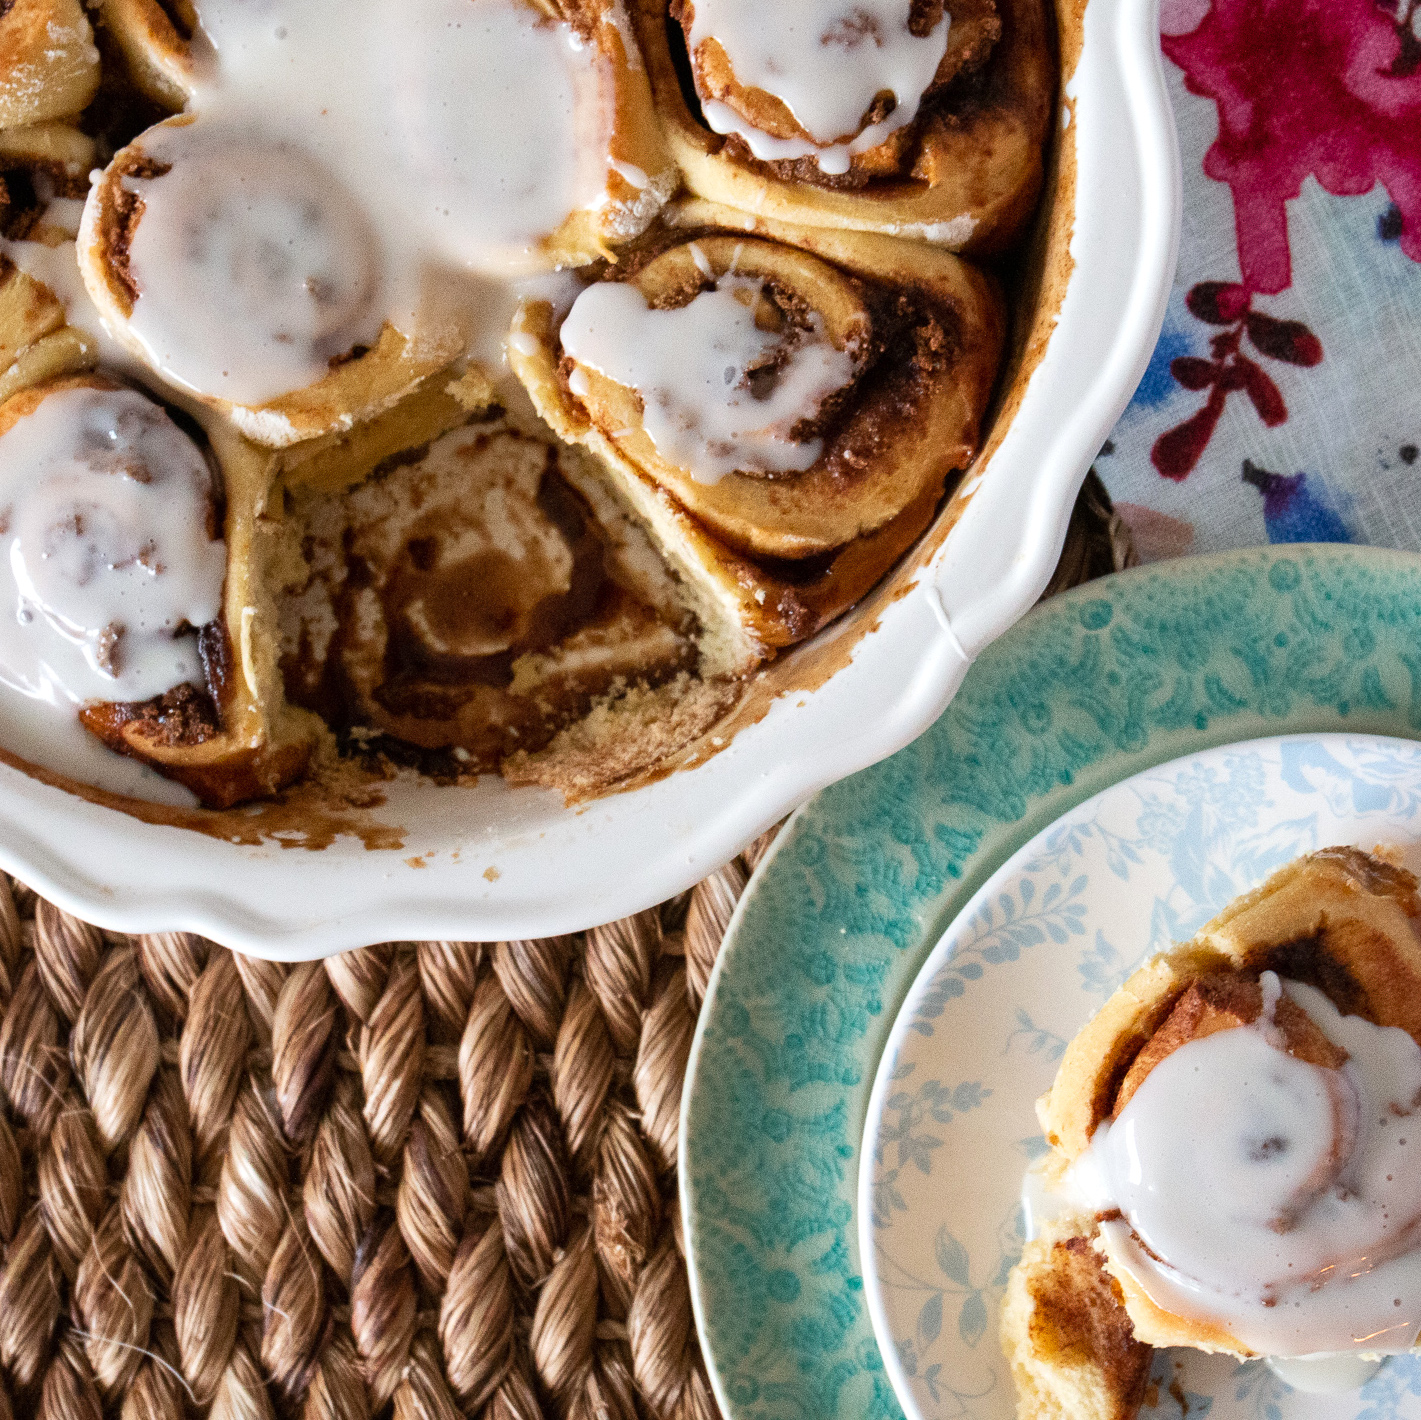 15 Breakfast Potluck Ideas That Will Wow Your Coworkers Allrecipes